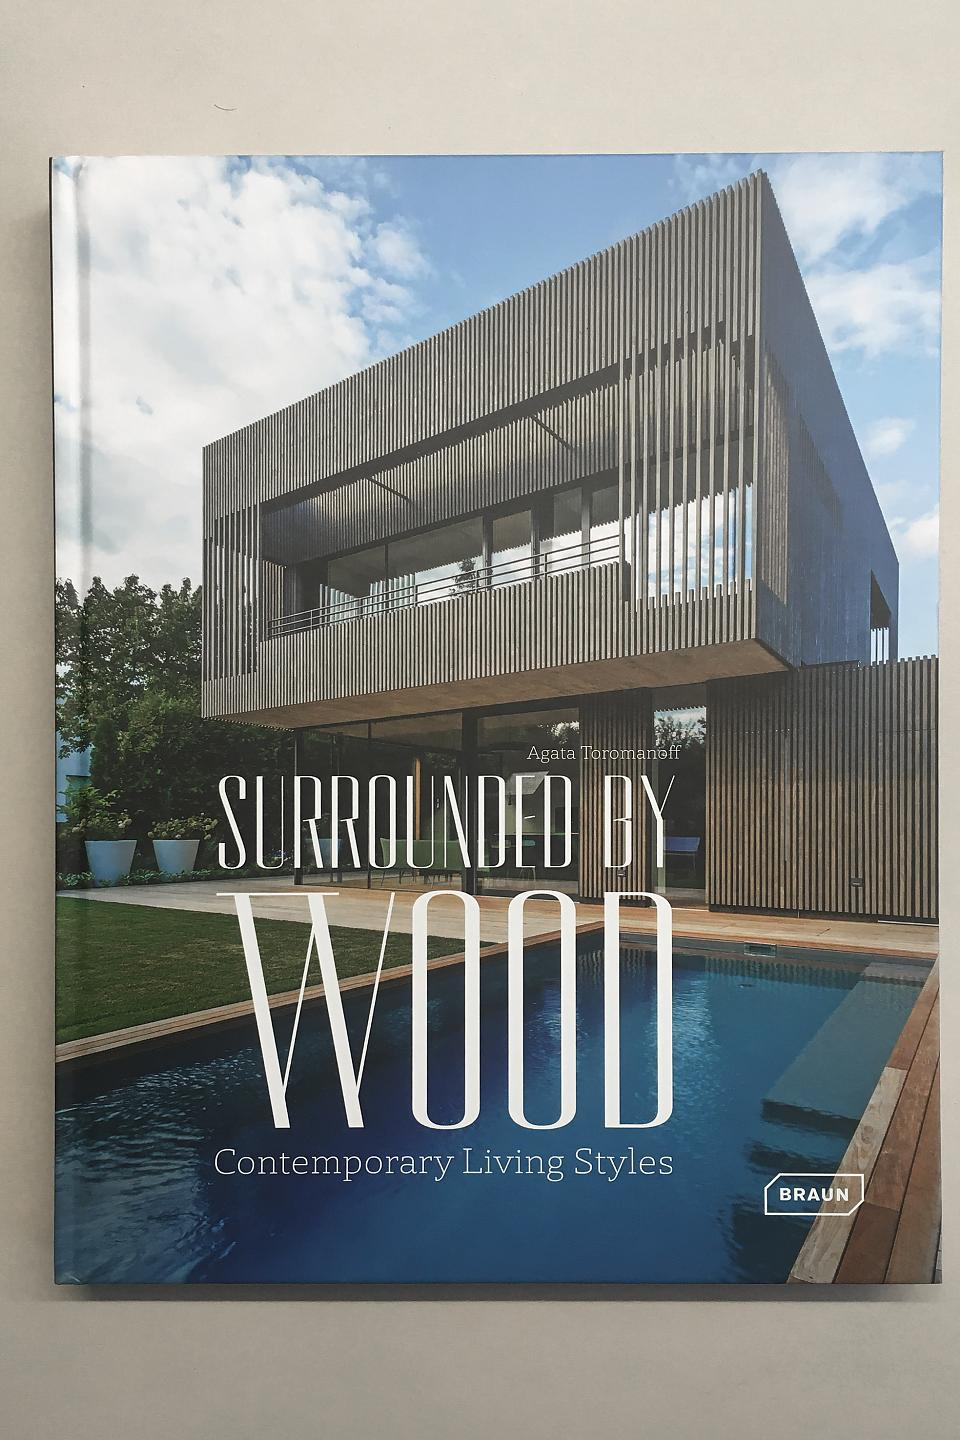 2020 Braun Publishing Surrounded by Wood Agata Toromanoff